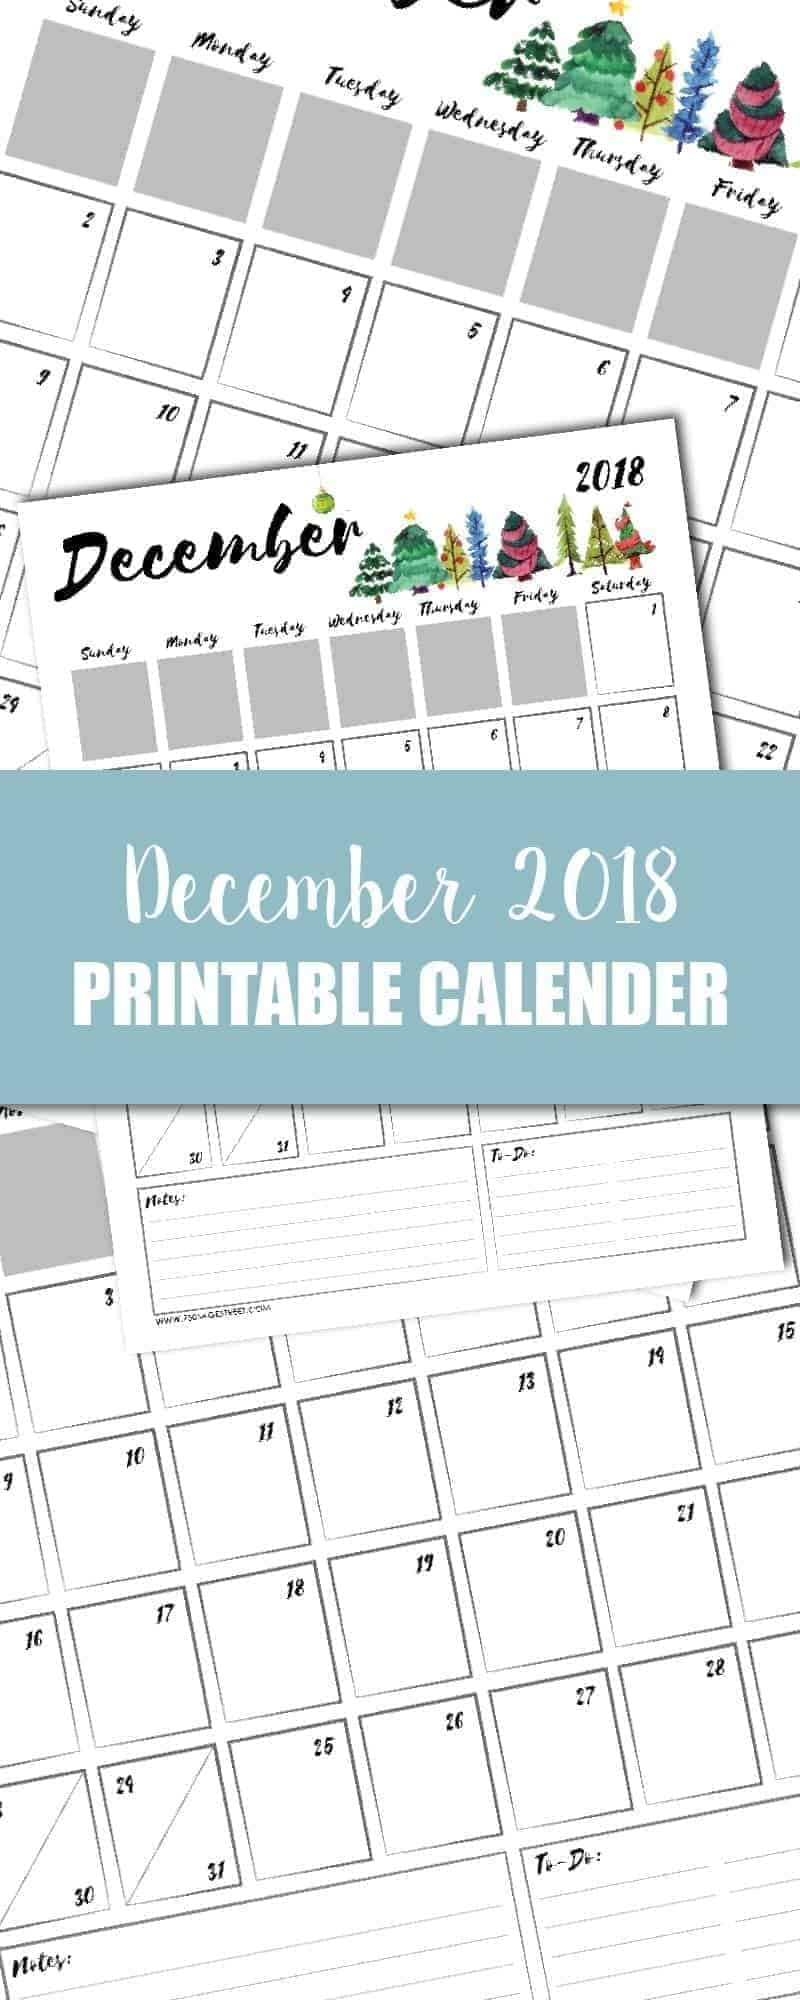 tall graphic showing a December 2018 printable calendar